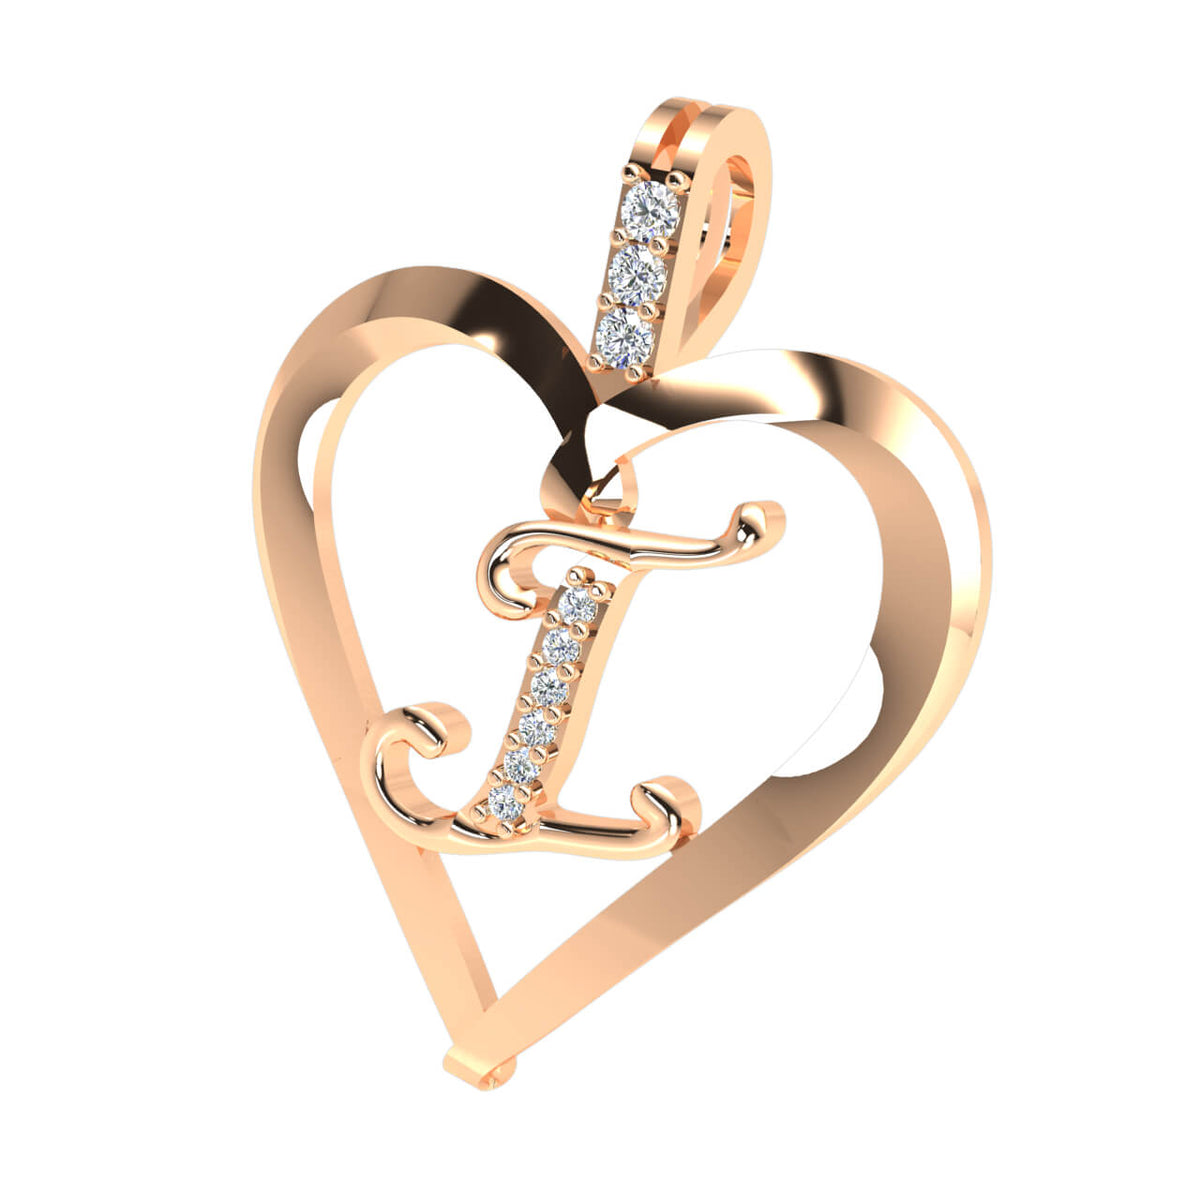 0.07 Ct Heart Initial Pendant For Adults Round GH I1-I2 Diamond 925 Sterling Silver